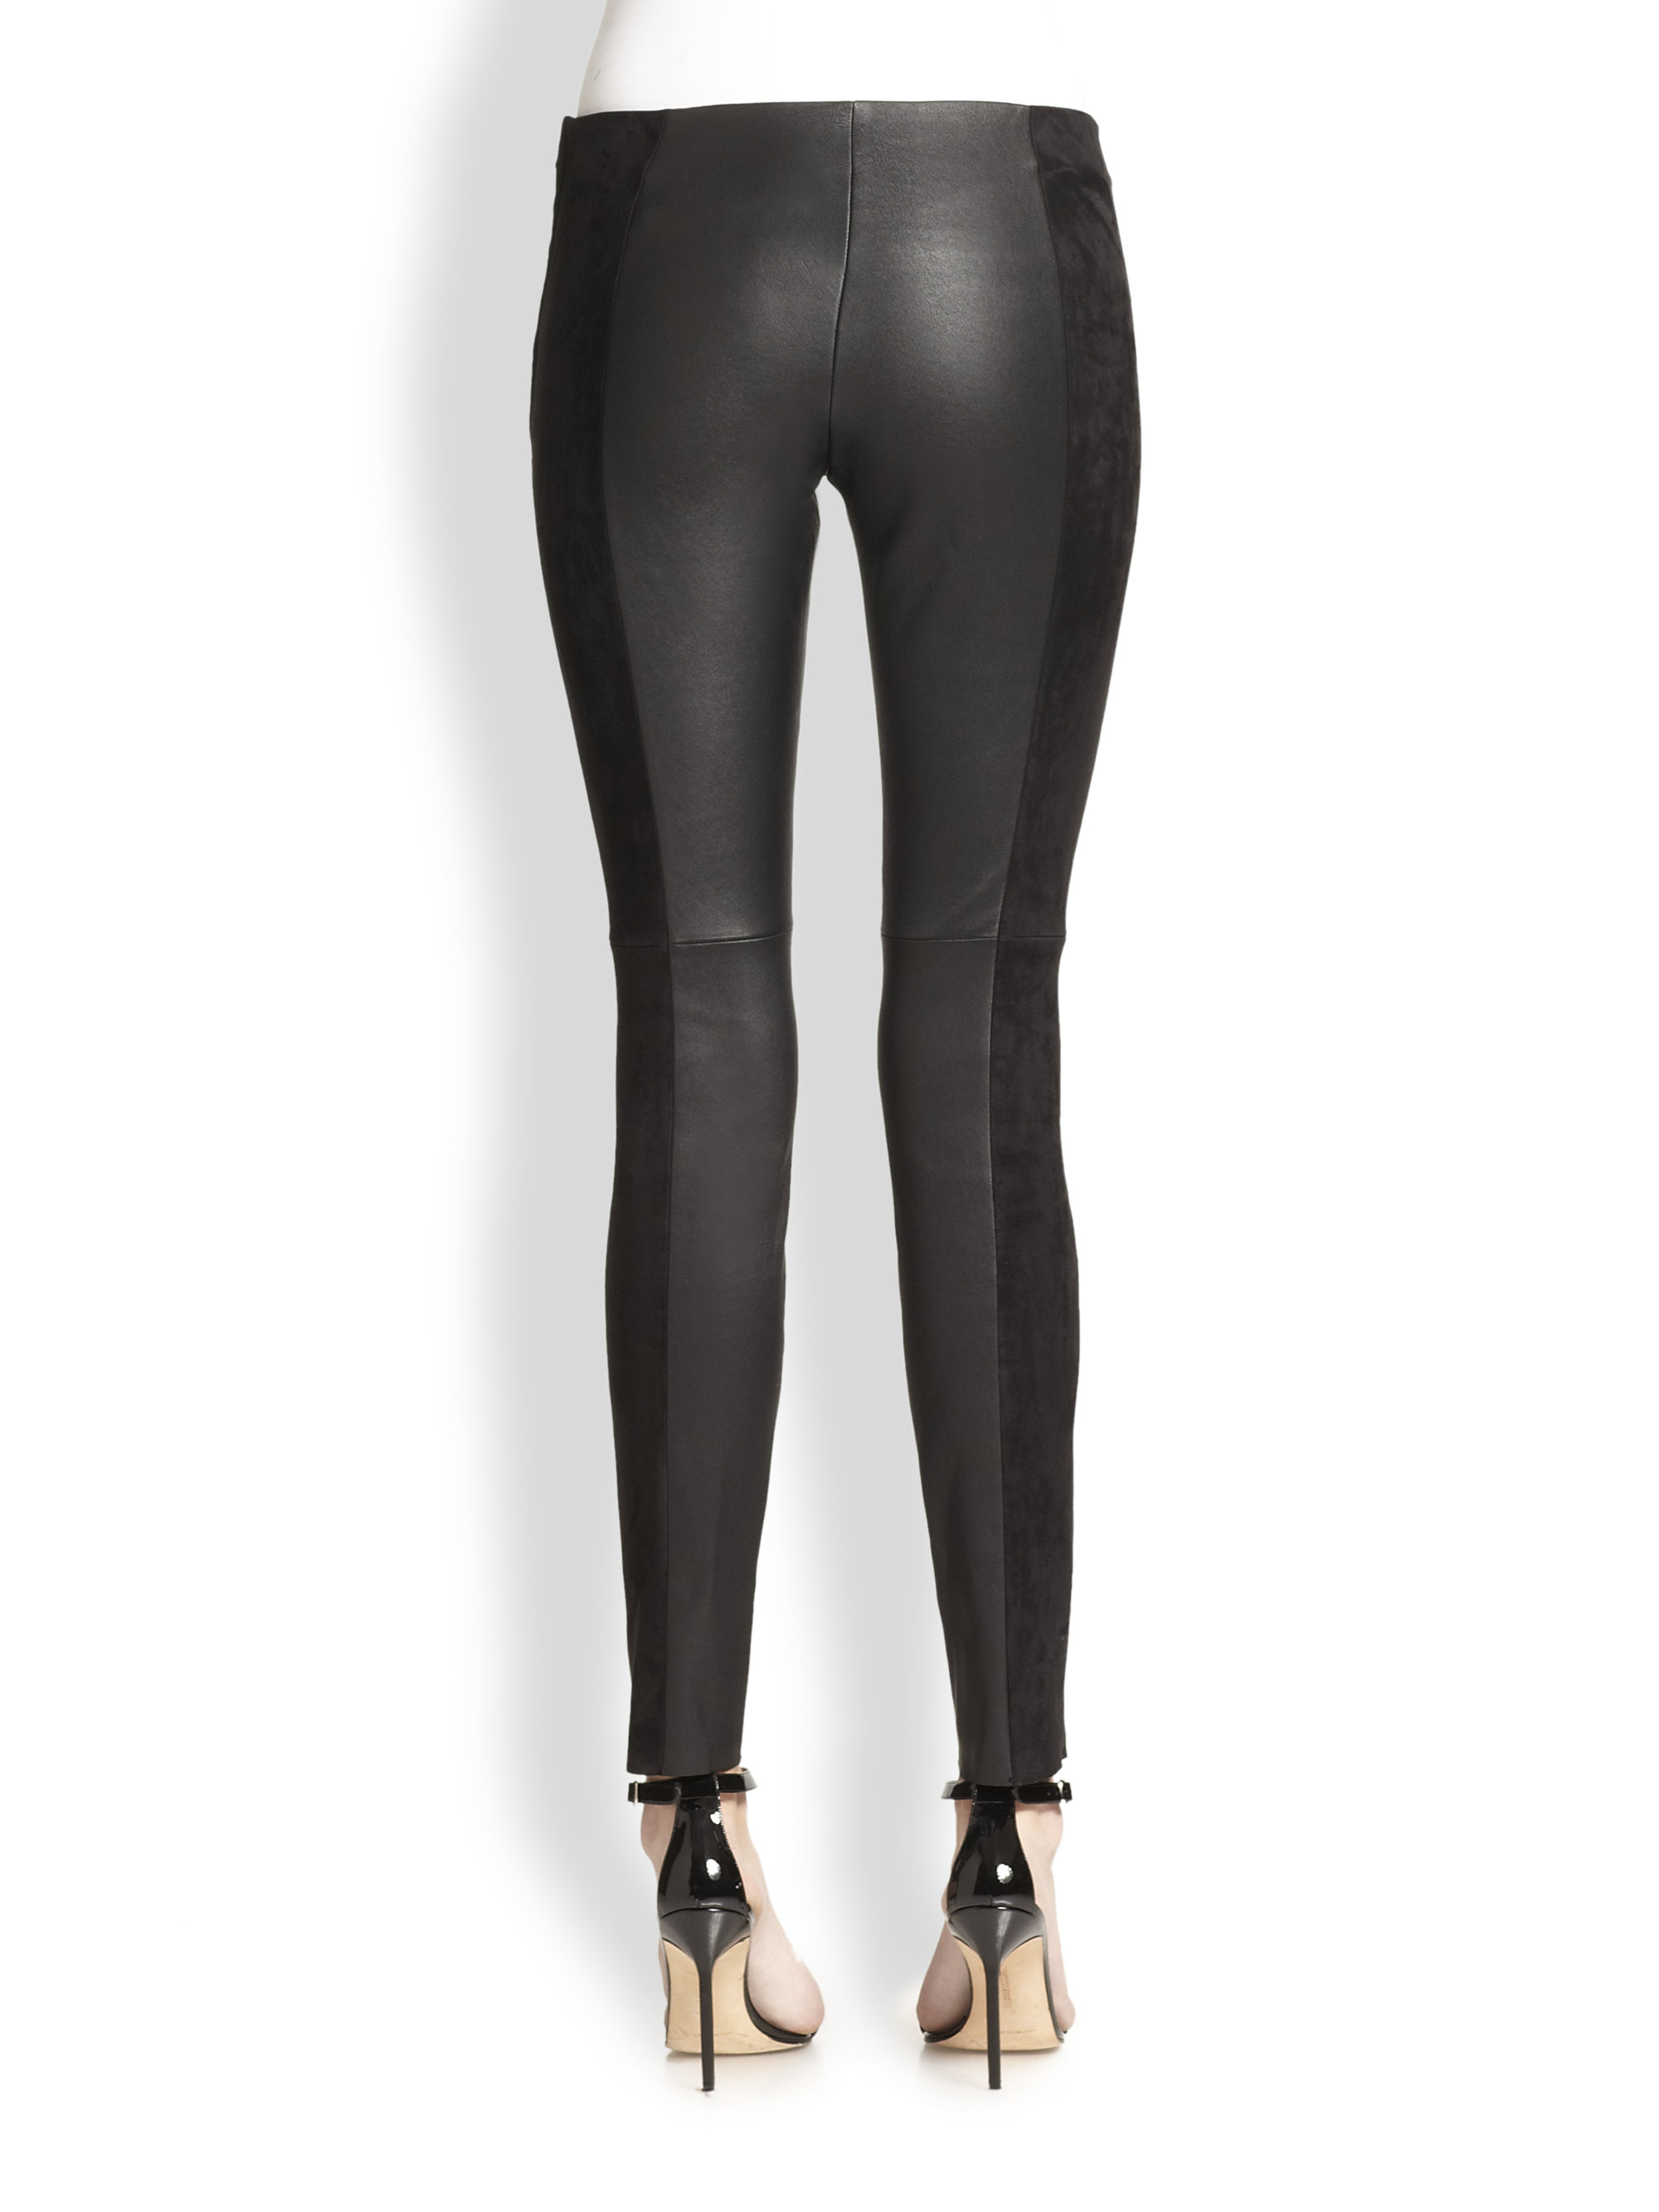 Michael kors Stretch Leather & Suede Leggings in Black | Lyst